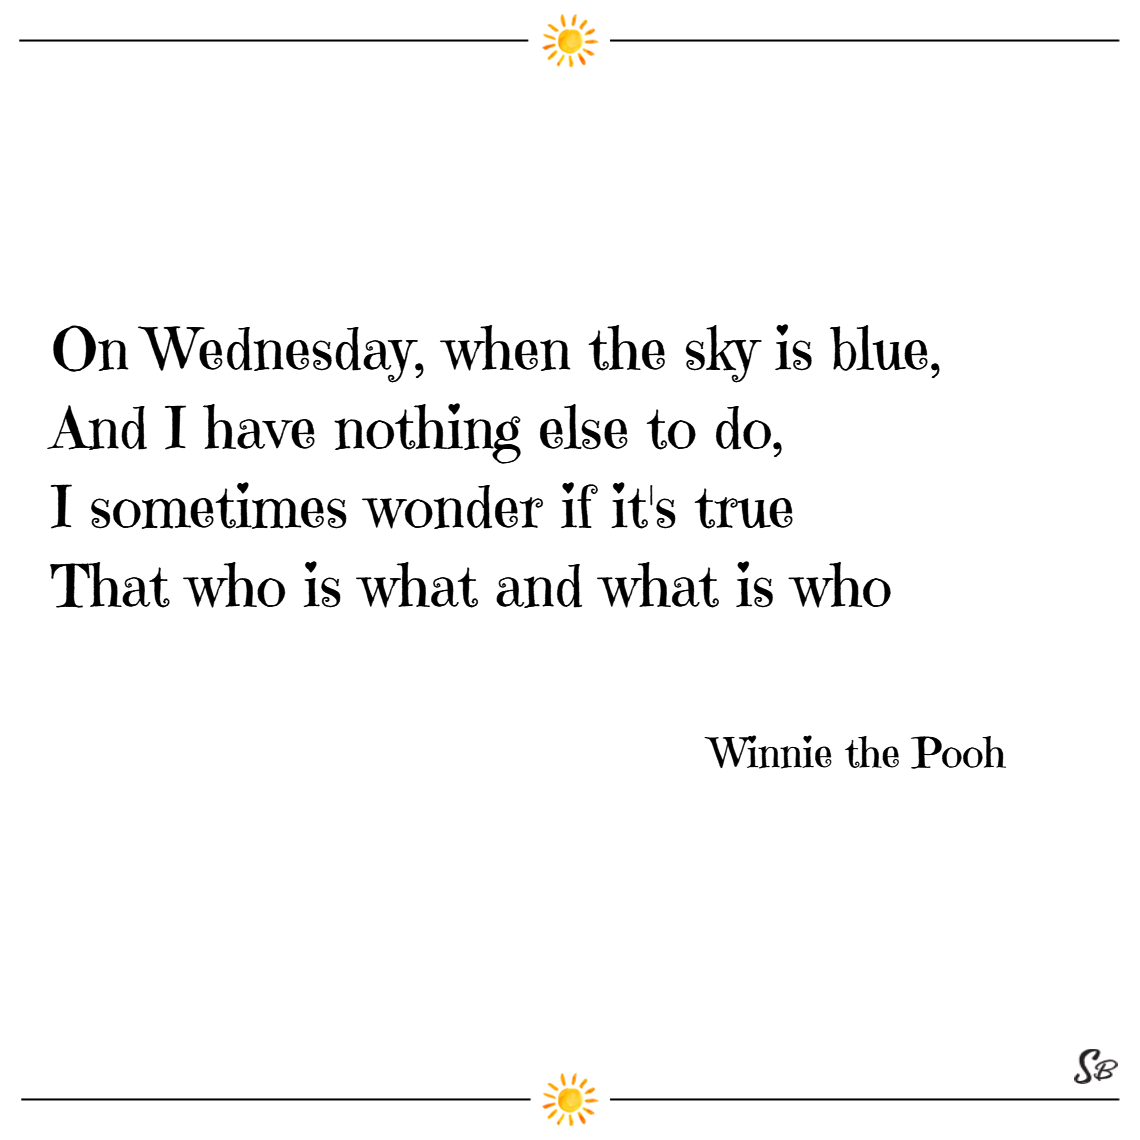 On wednesday, when the sky is blue, and i have nothing else to do, i sometimes wonder if it's true that who is what and what is who. – winnie the pooh wednesday quotes